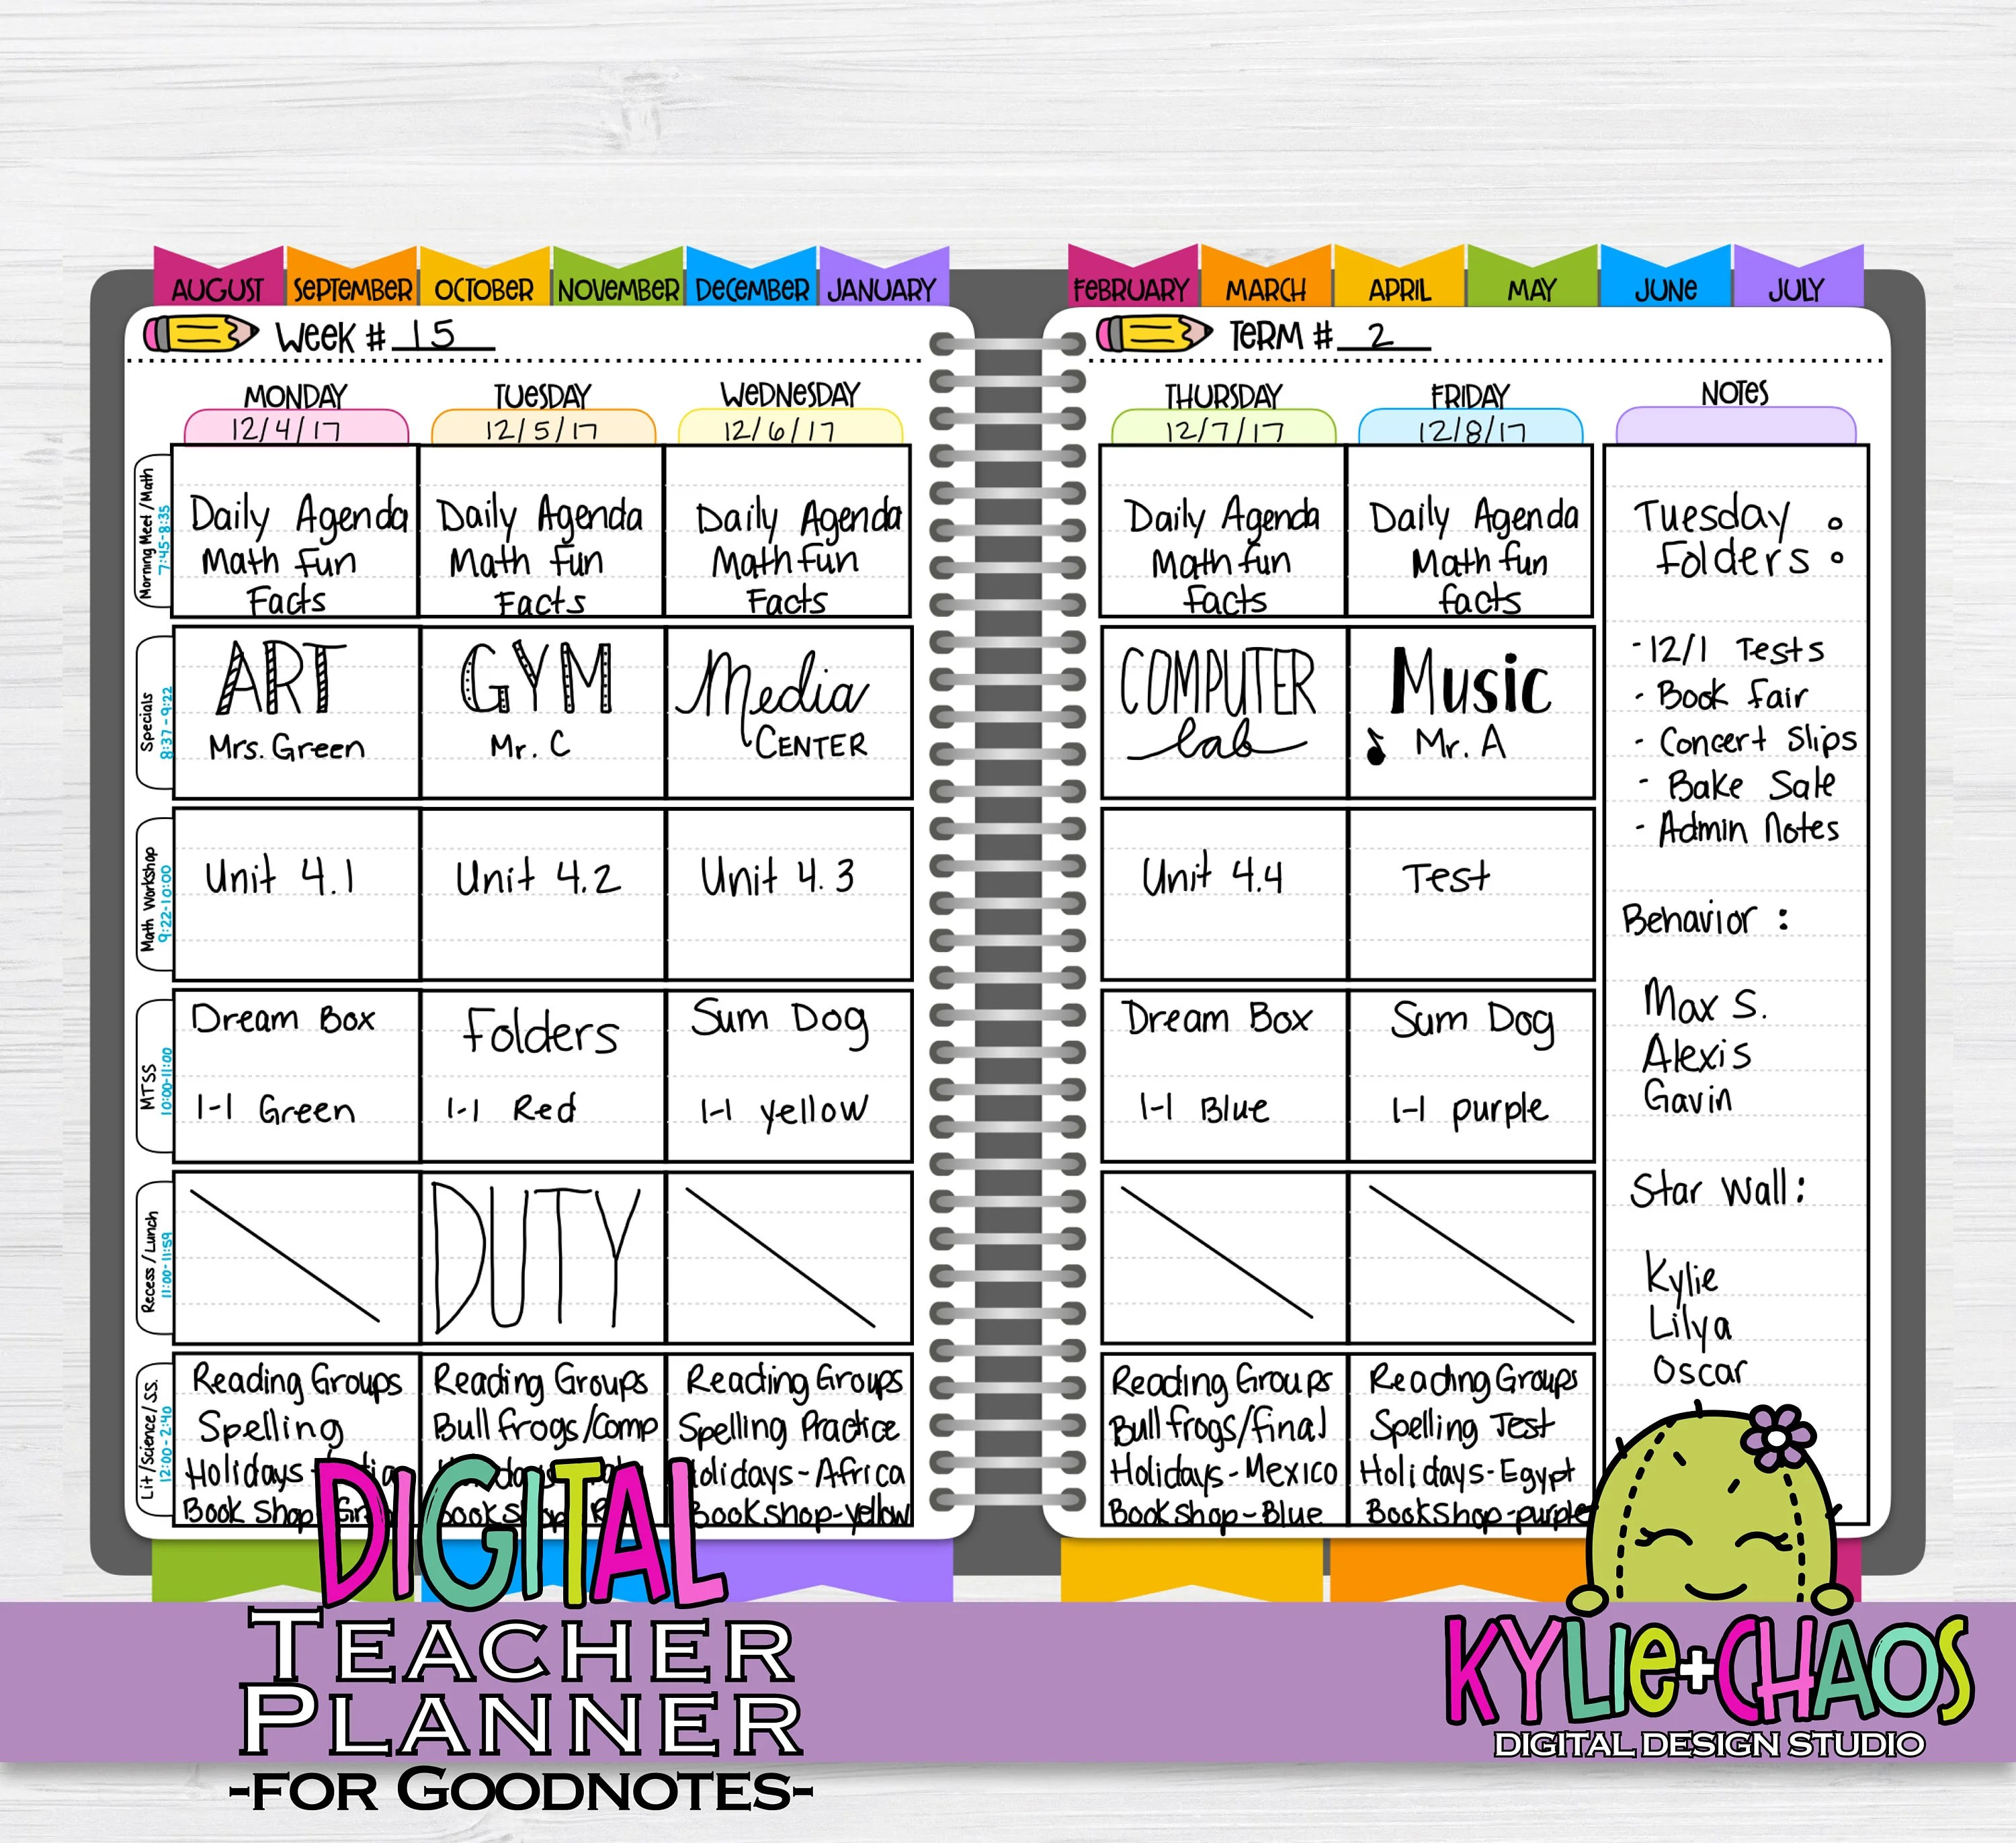 Digital Teacher Planner for GoodNotes on IPhone and IPad with Etsy